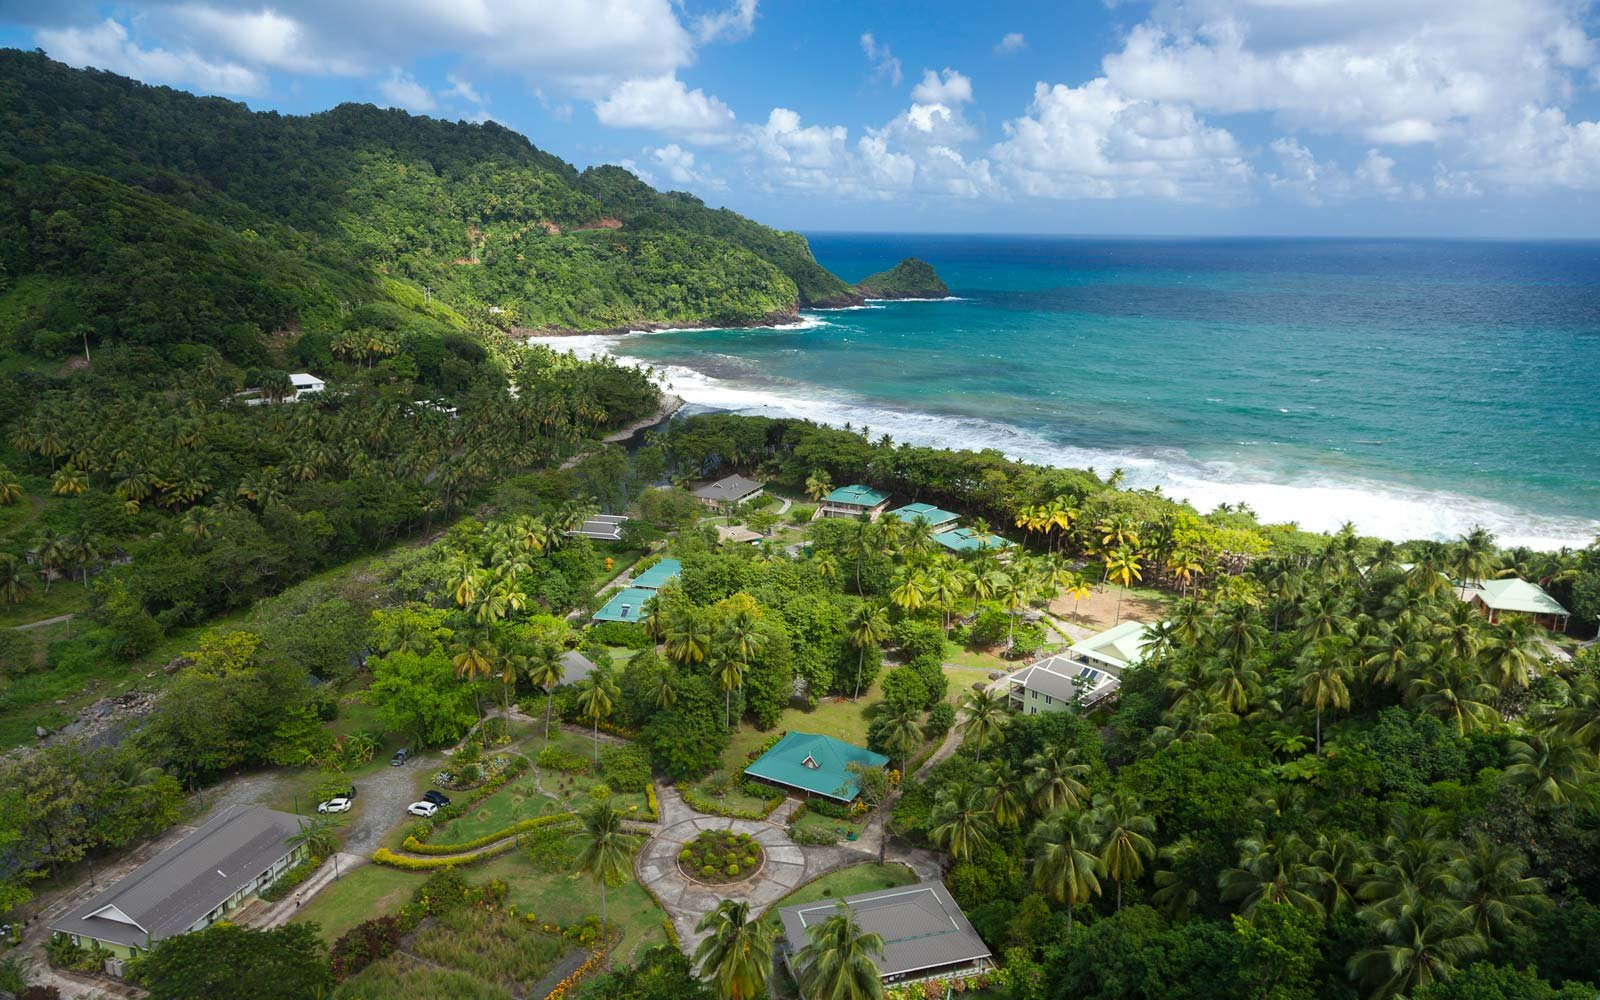 aerial view of Rosalie Bay in Dominica